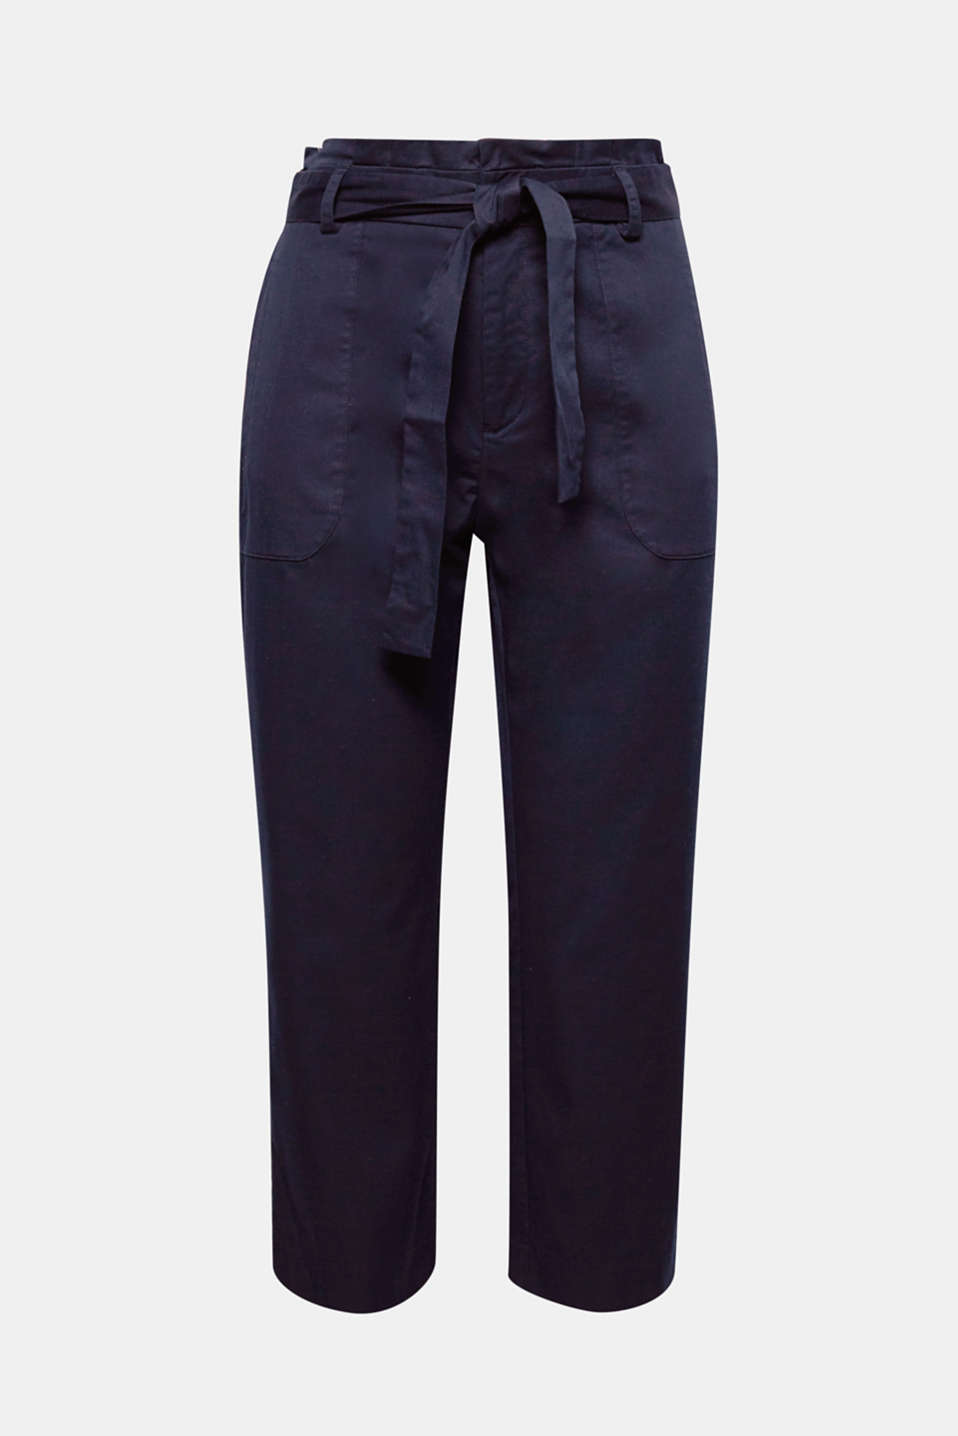 Everyday favourite with a super fashionable twist: these trousers are defined by their soft twill fabric, pleated paperbag waistband with a tie-around belt.